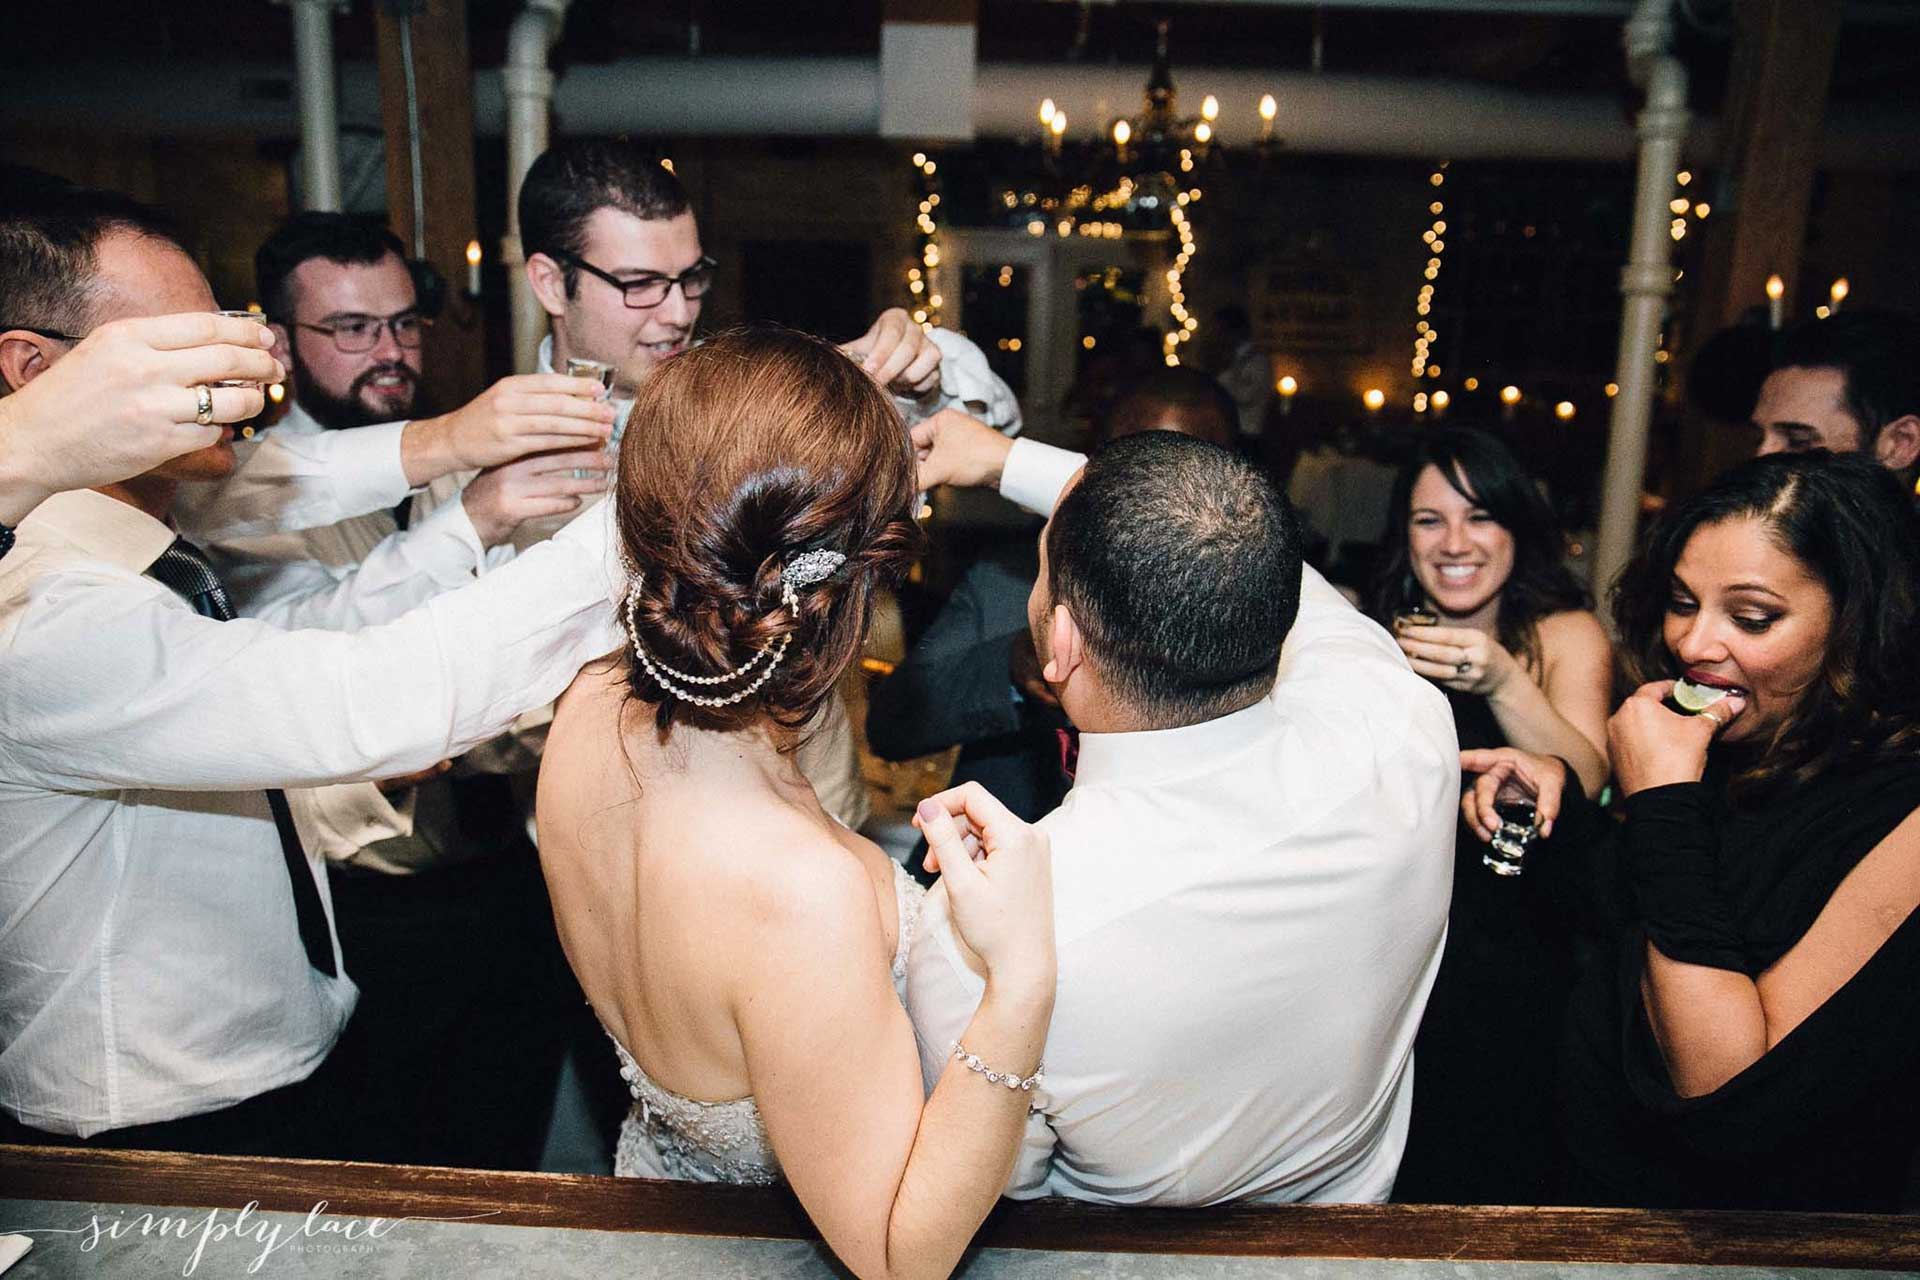 Unique Wedding Venues Toronto - Open Bar - Drinking with Guests before sit-down reception